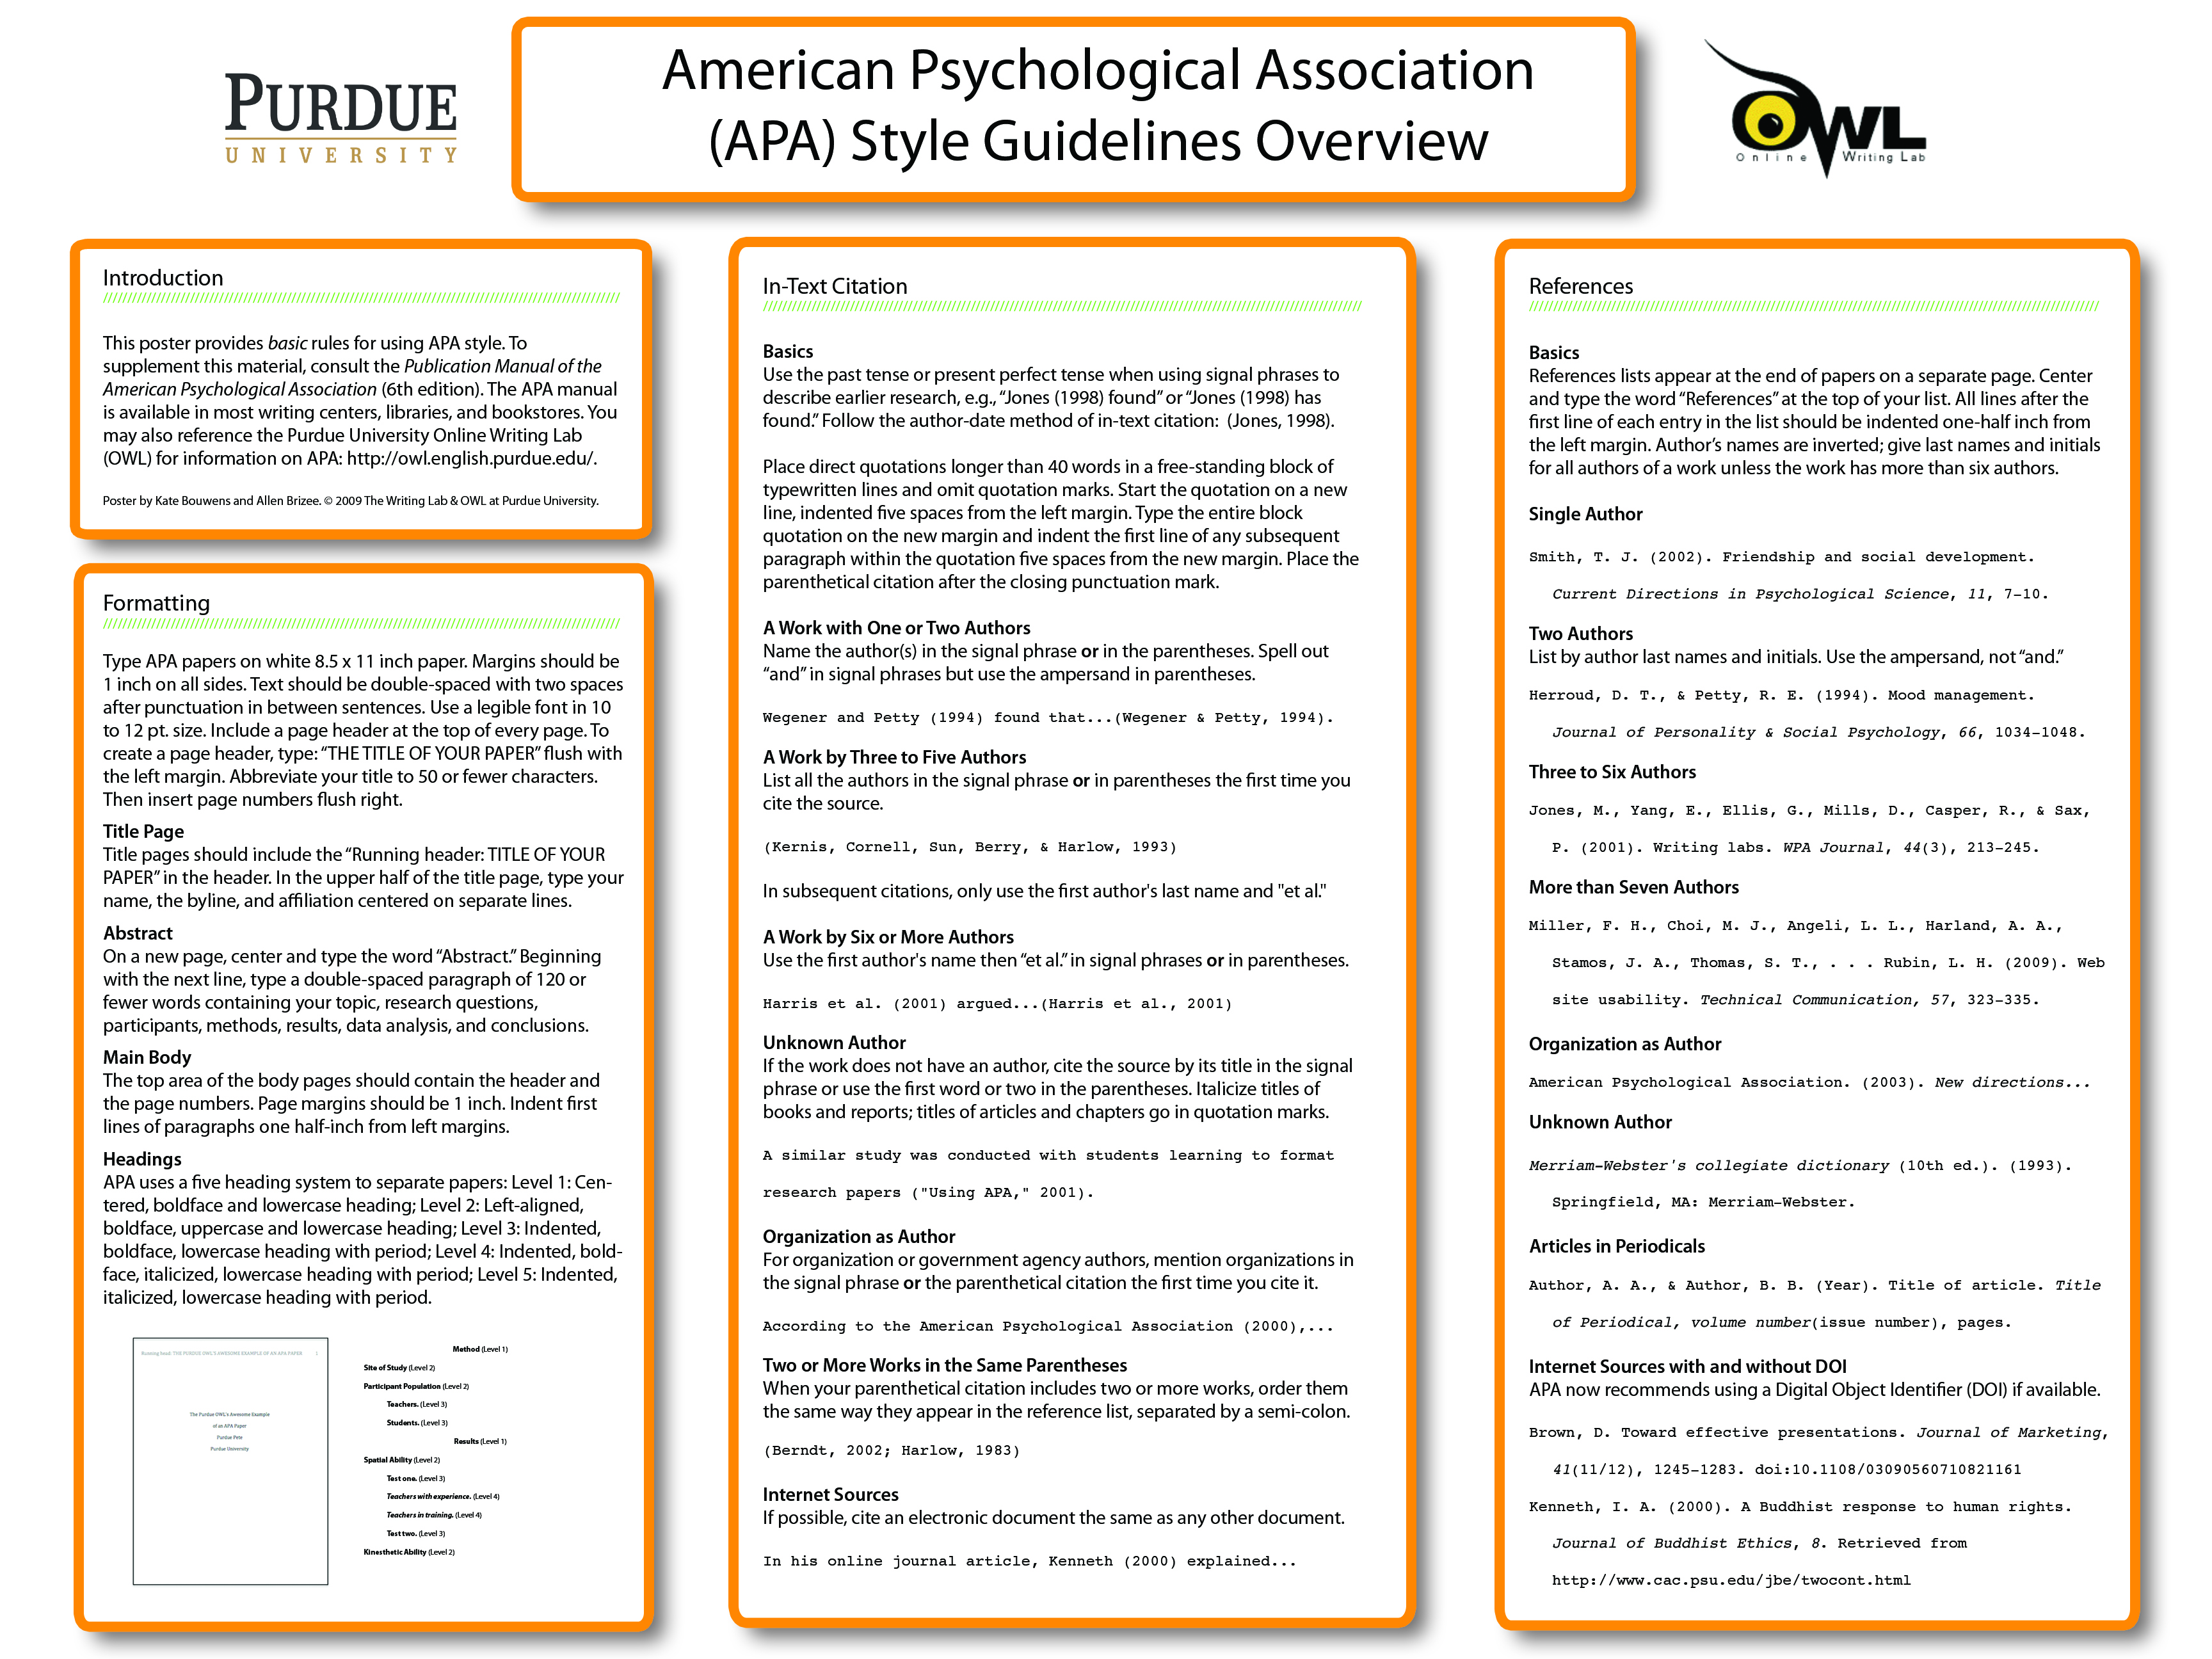 010 Apaposter09 Research Paper How To Write An Outline For Purdue Amazing A Owl Full